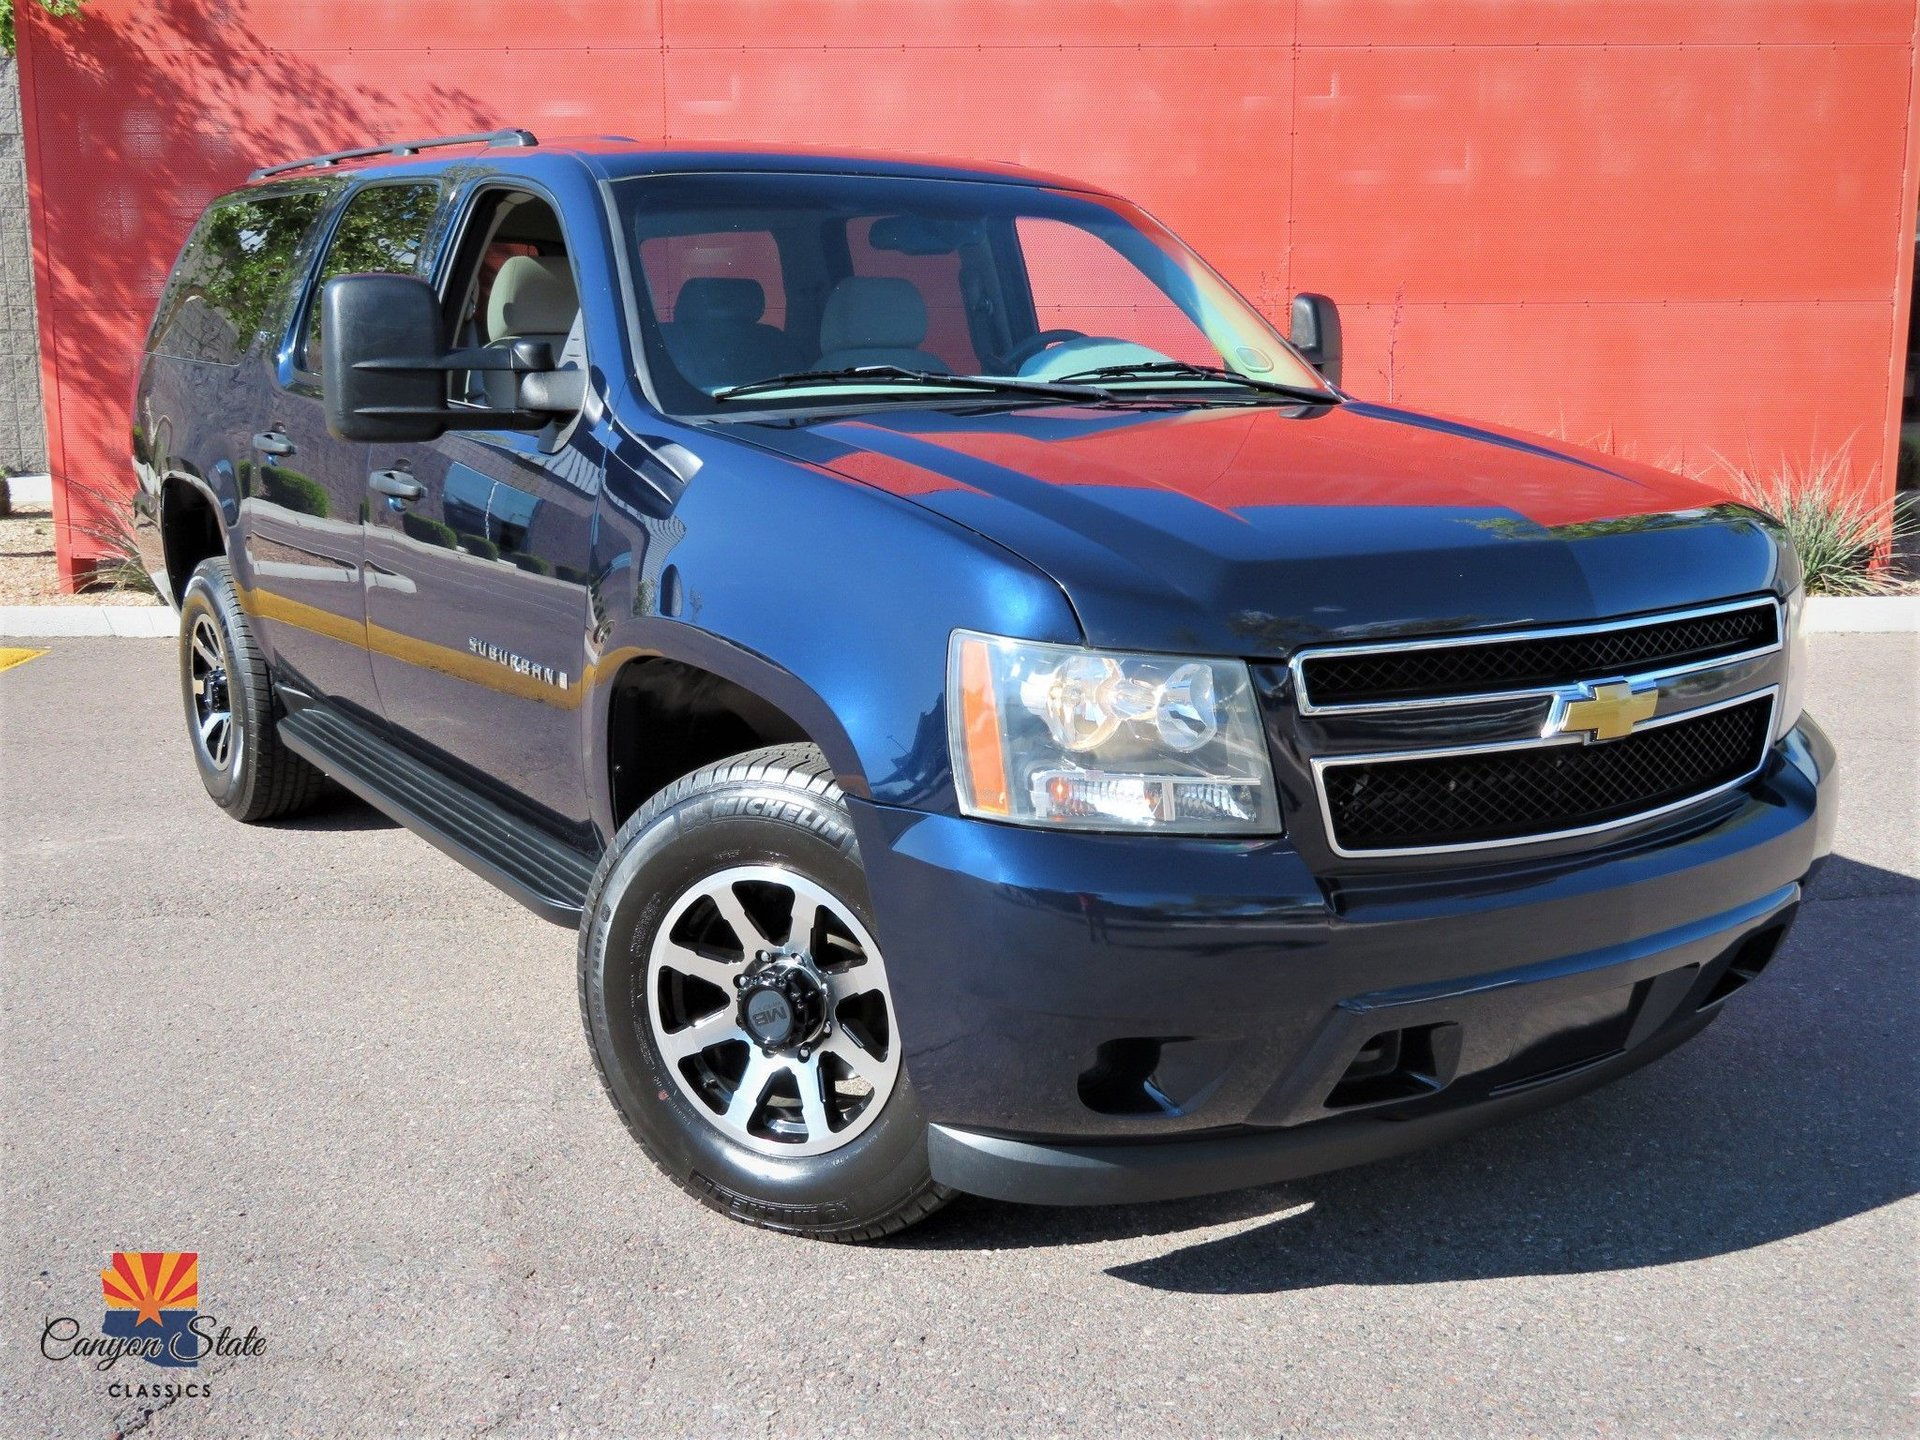 2008 Chevrolet Suburban 2500 Canyon State Classics